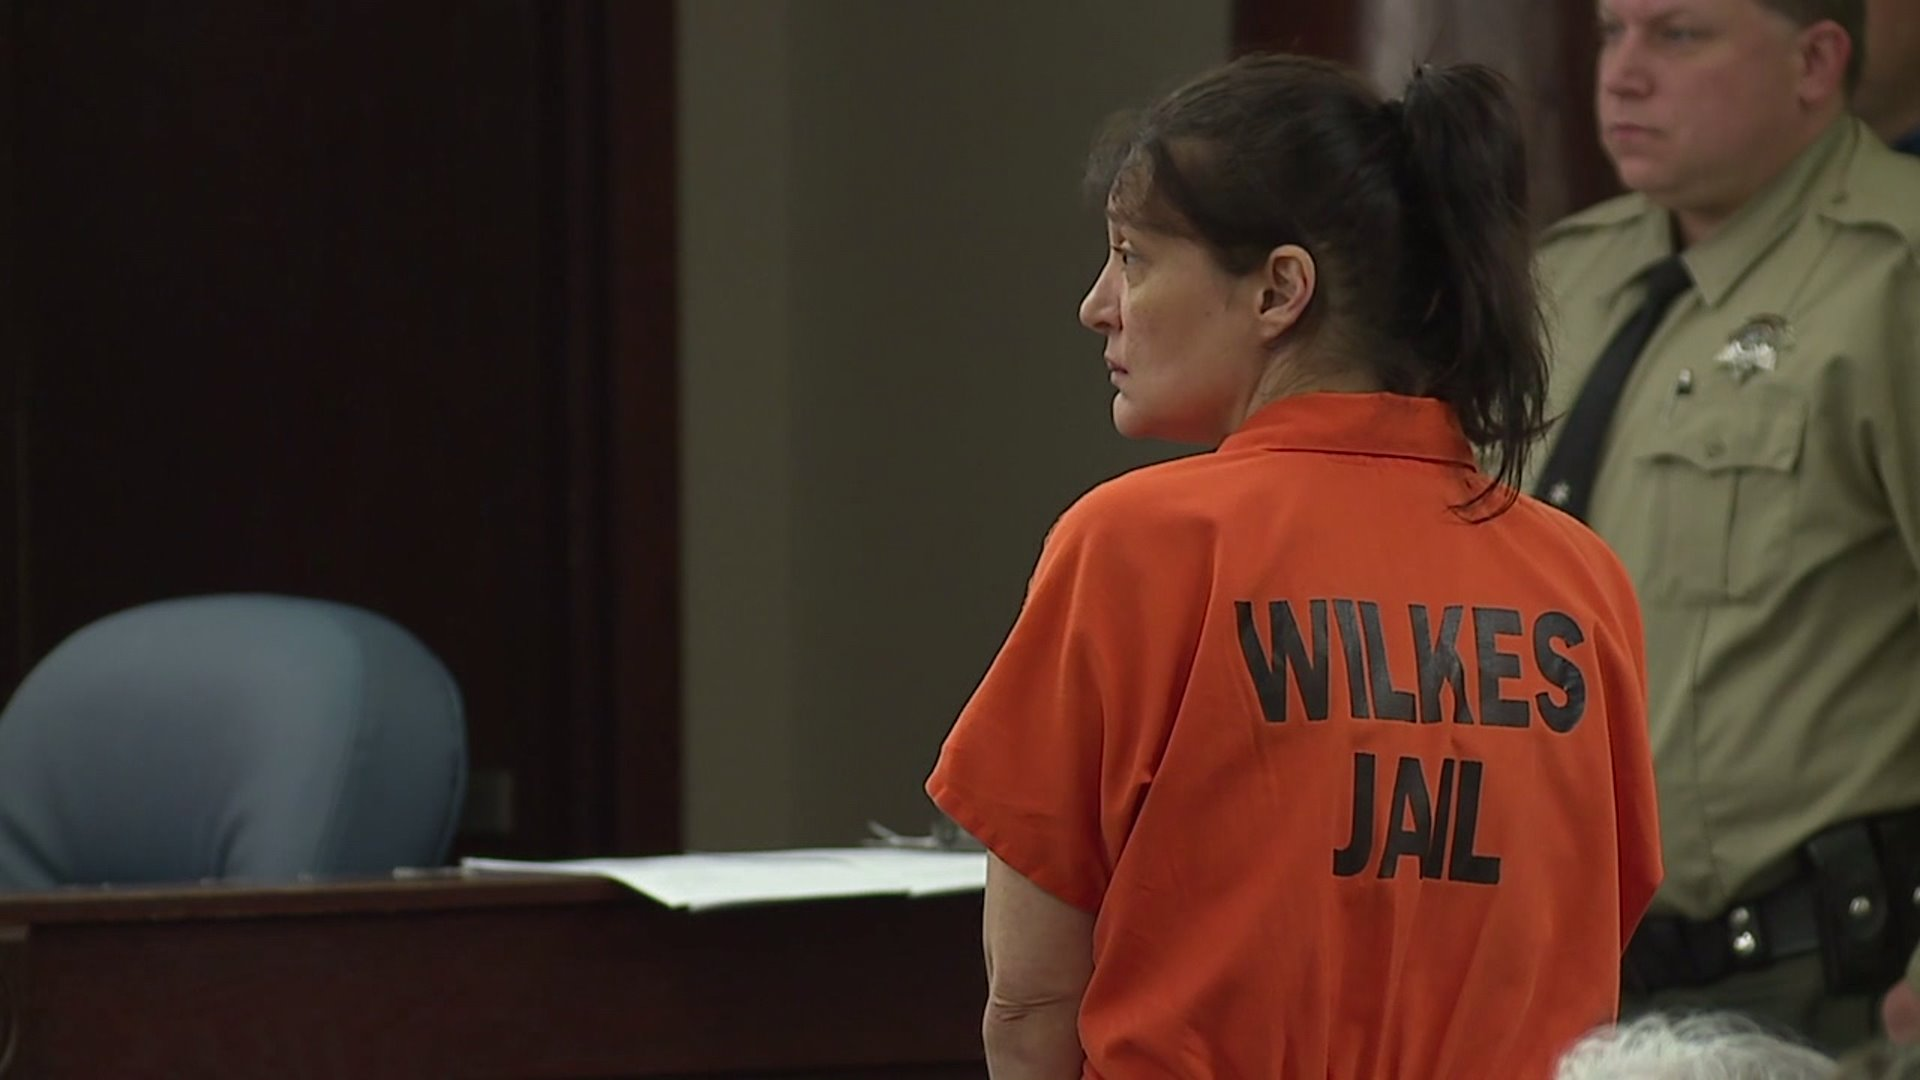 Suspects appear in court after stolen car connected to disappearance of Tennessee girl found in Wilkes County.